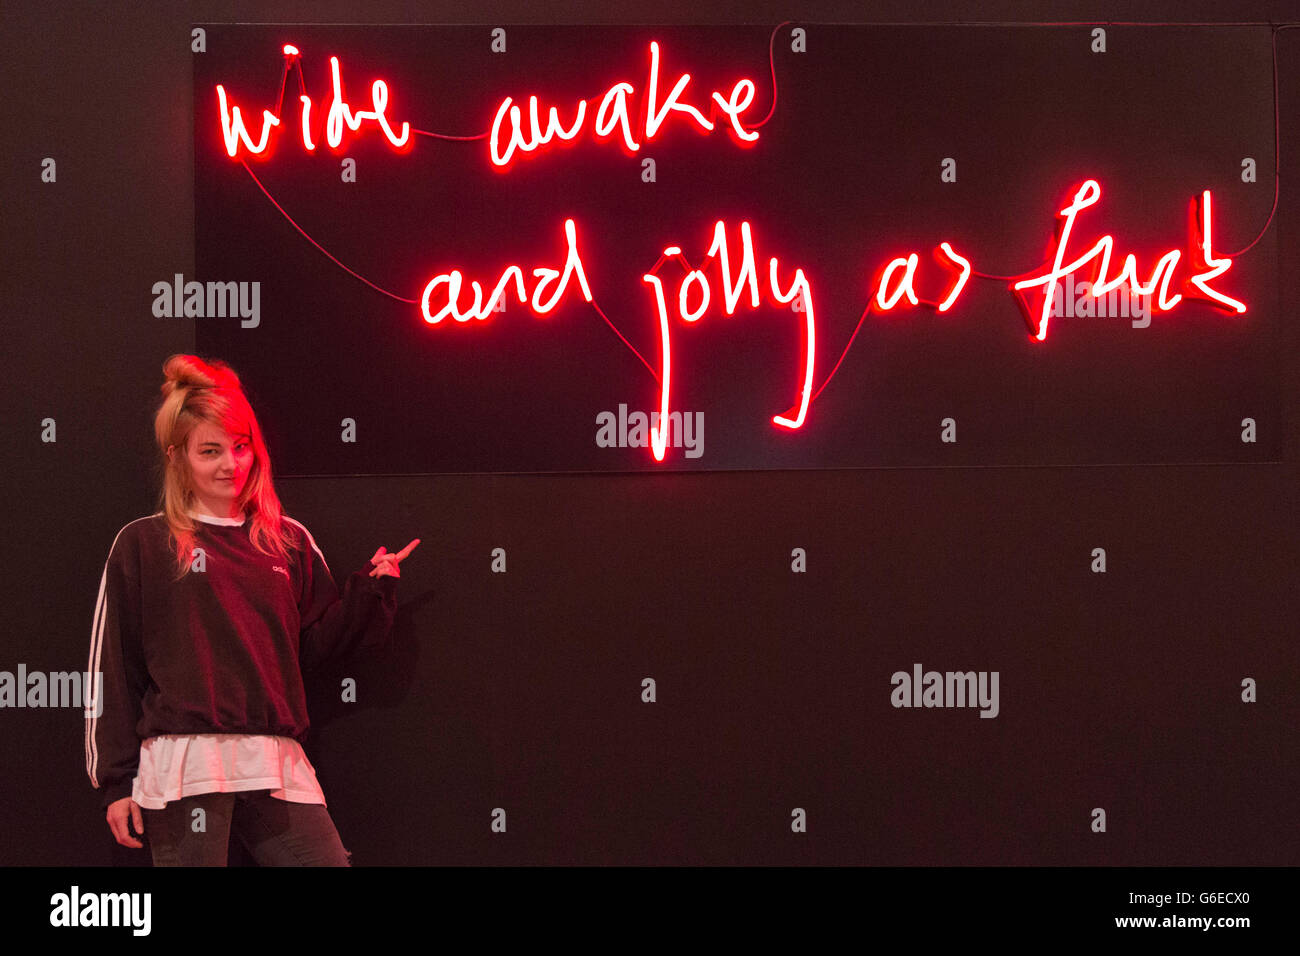 London Uk  Ailsa Sinclair Wide Awake And Jolly As Fuck A Project That Explores The Positive Attributes That Come With Mental Illness